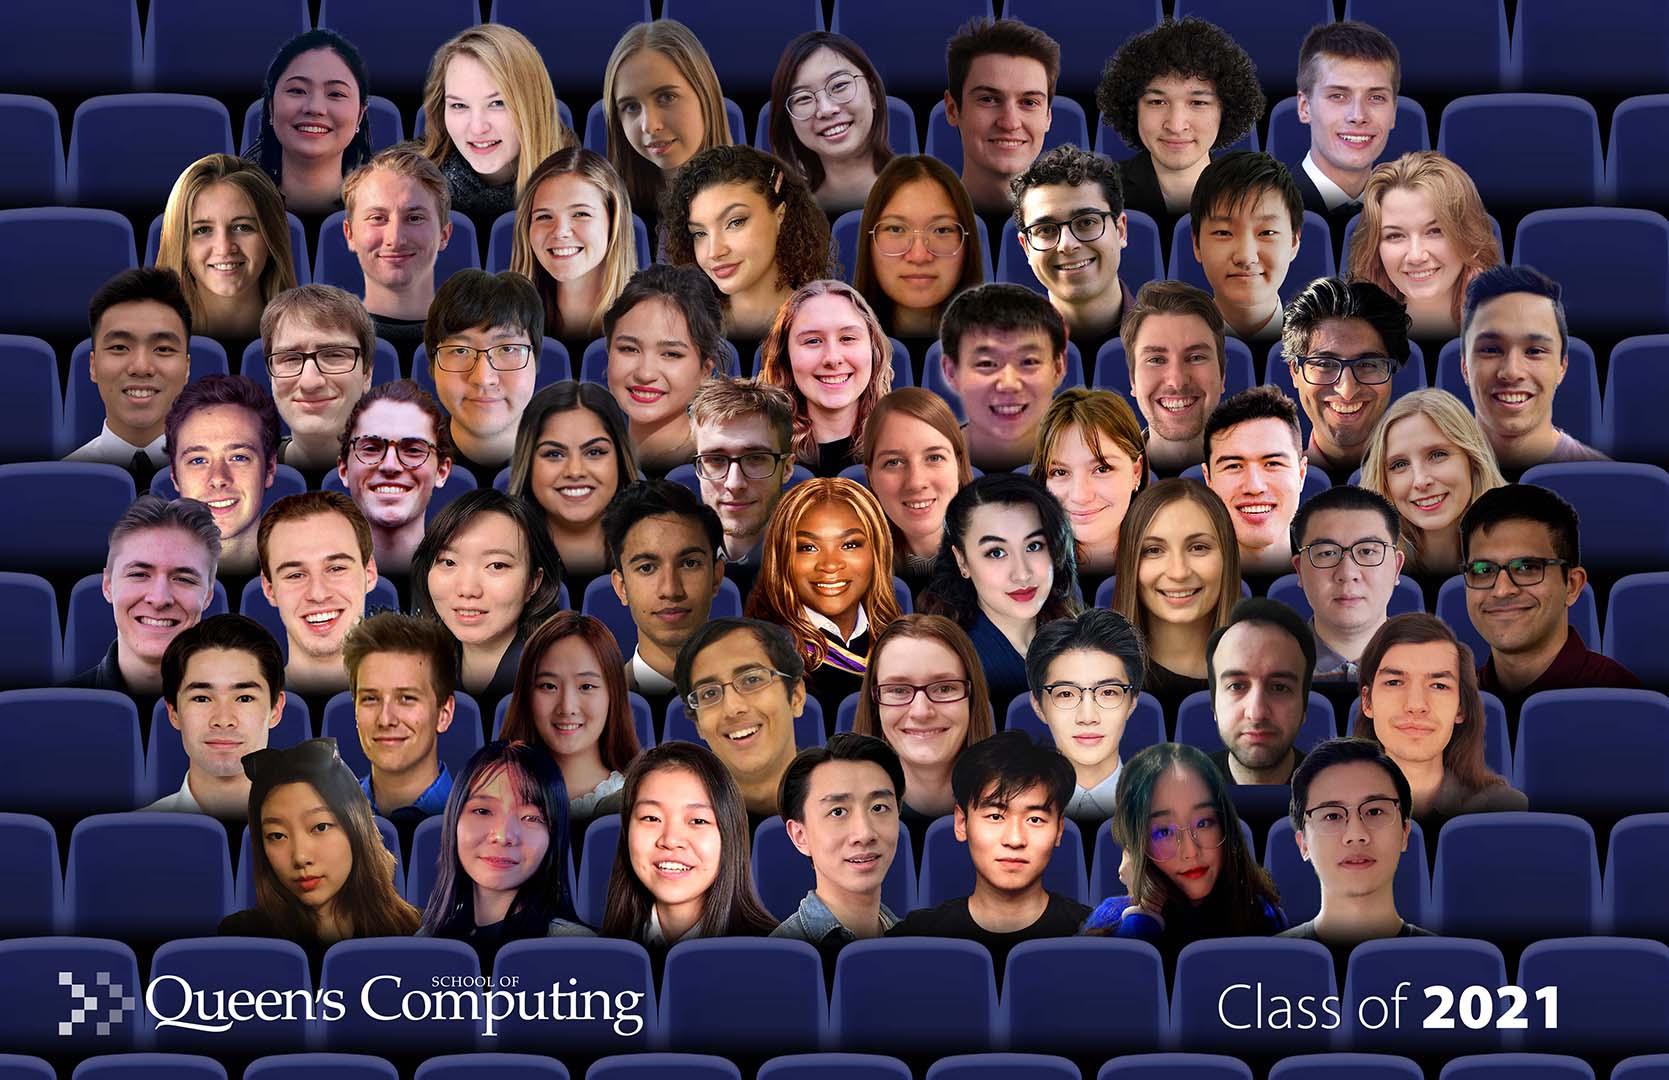 Congratulations to the Computing Class of 2021